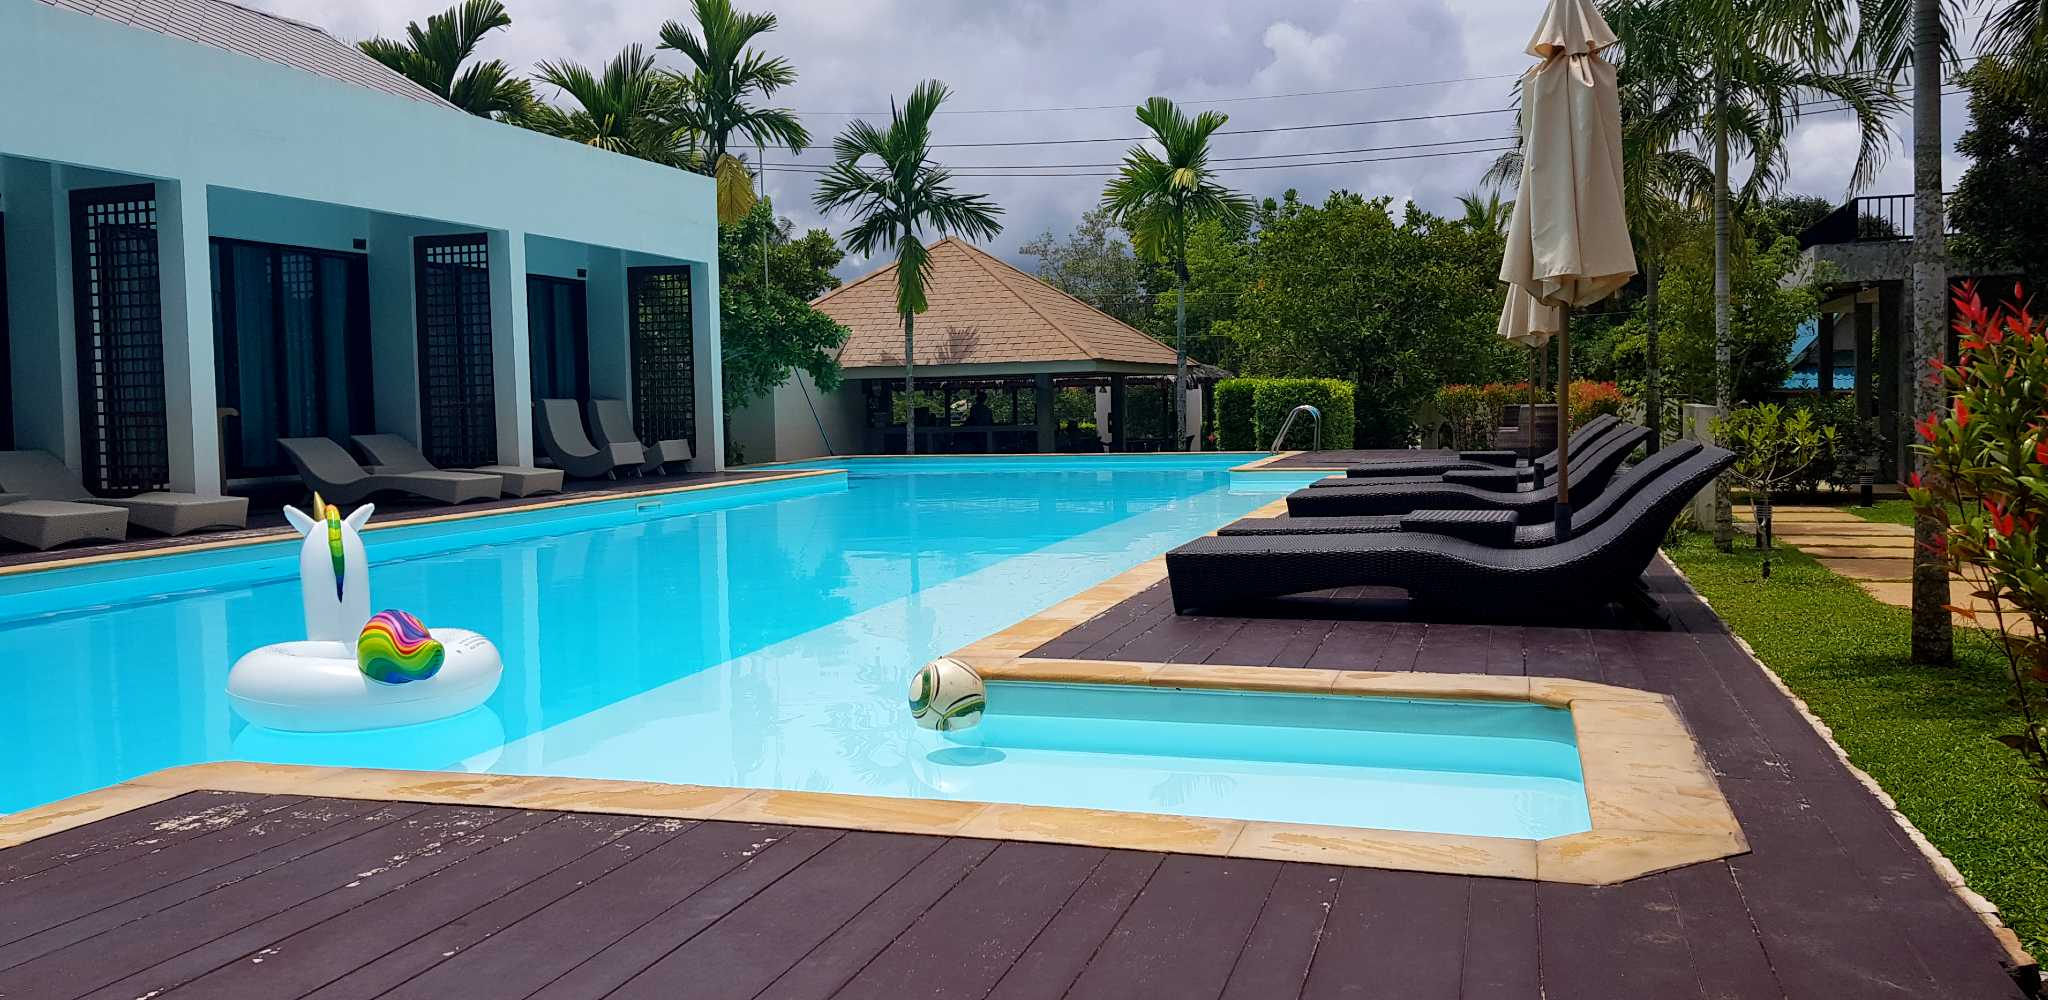 MookLamai Resort with pool and bungalows on Koh Mook